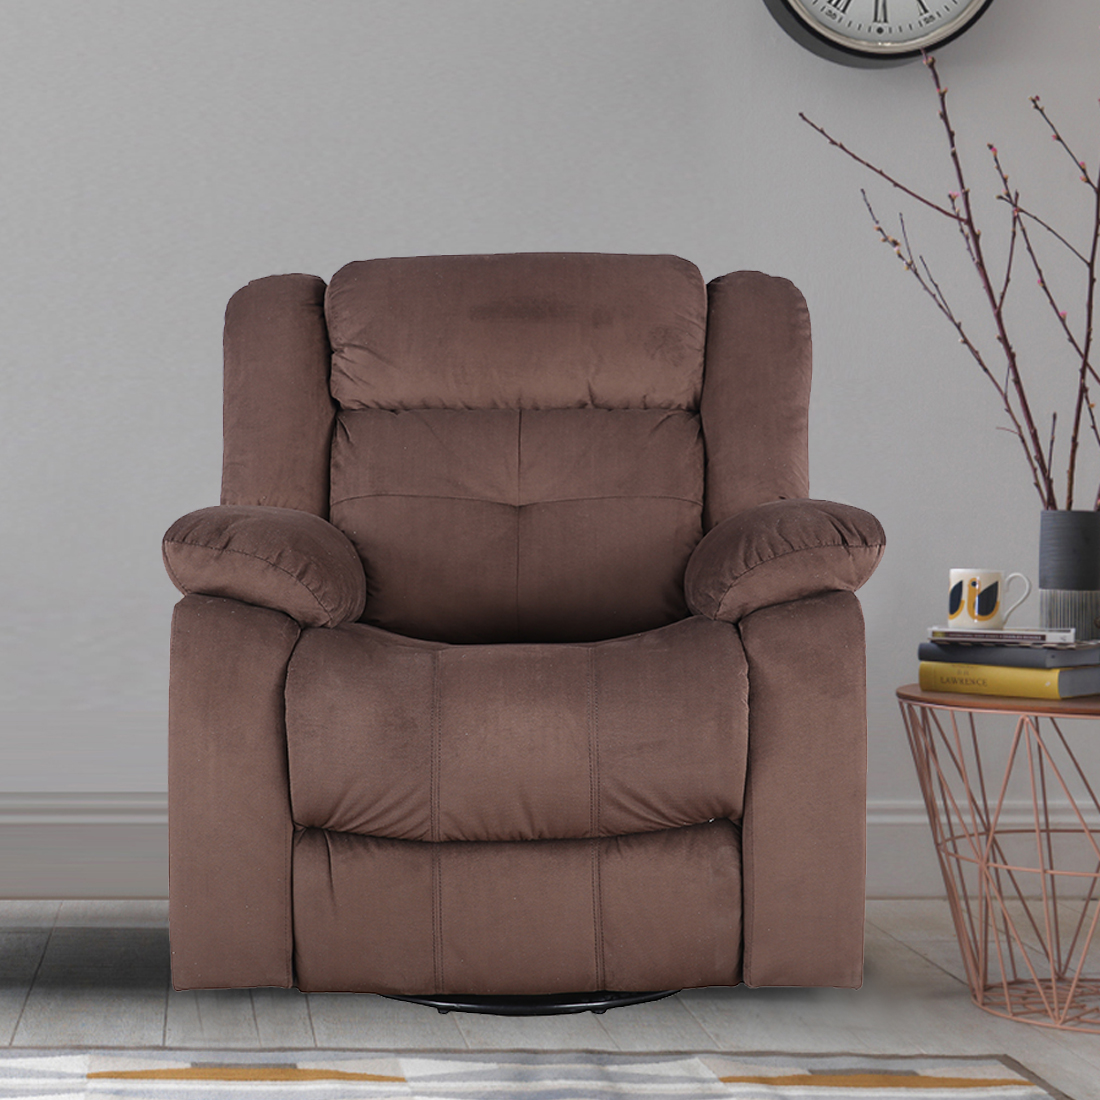 Christopher Fabric Single Seater Recliner With Swivel in Brown Colour by HomeTown